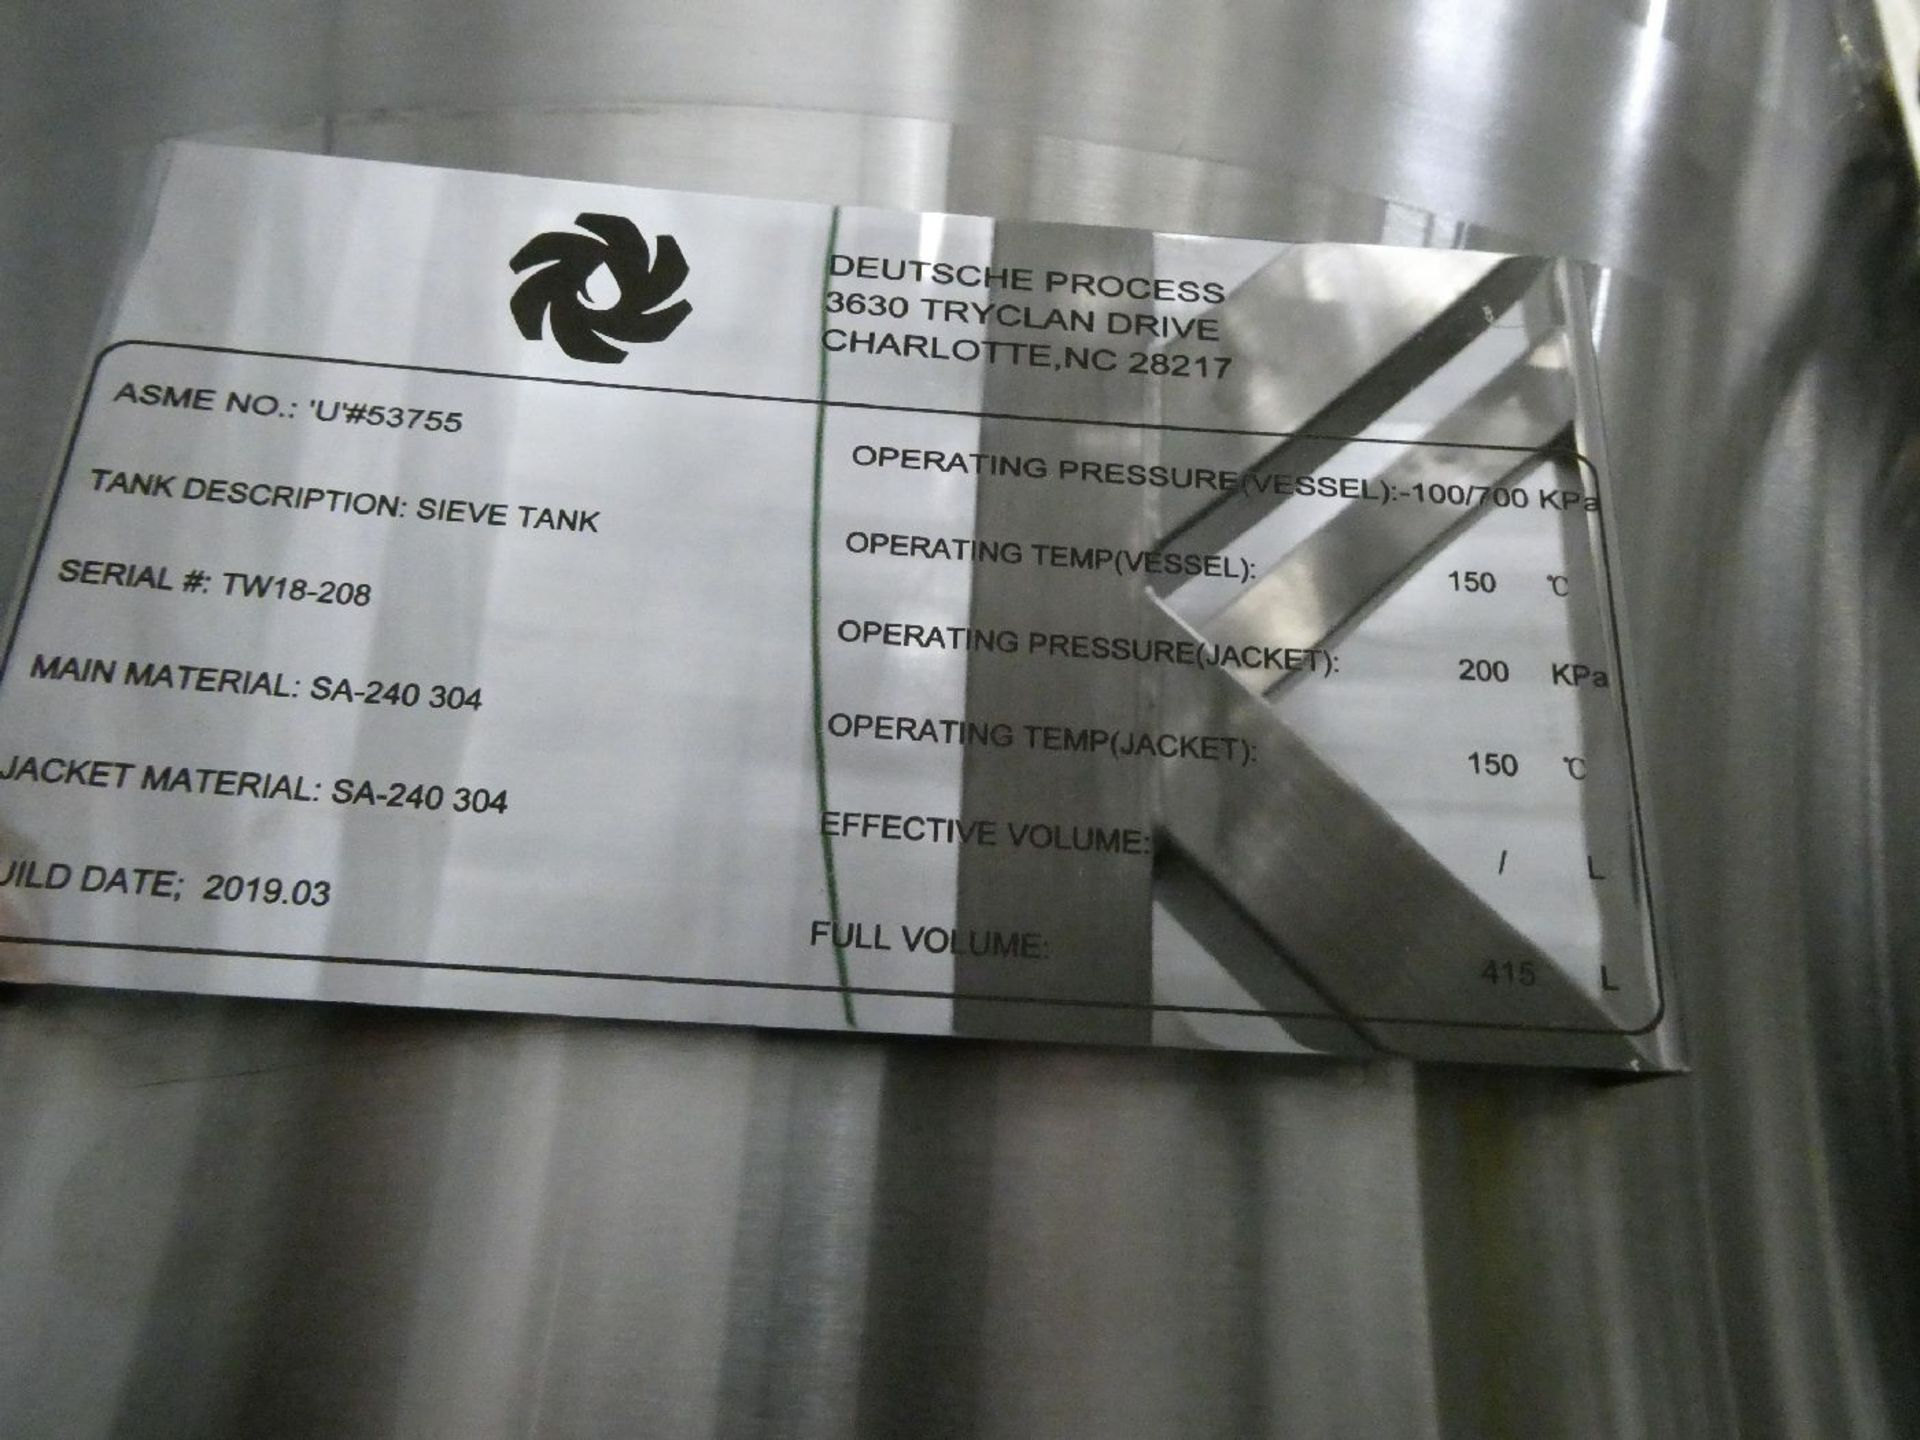 ROTAX Closed Loop Solvent Based Continuous Oil Extraction System - Image 36 of 68